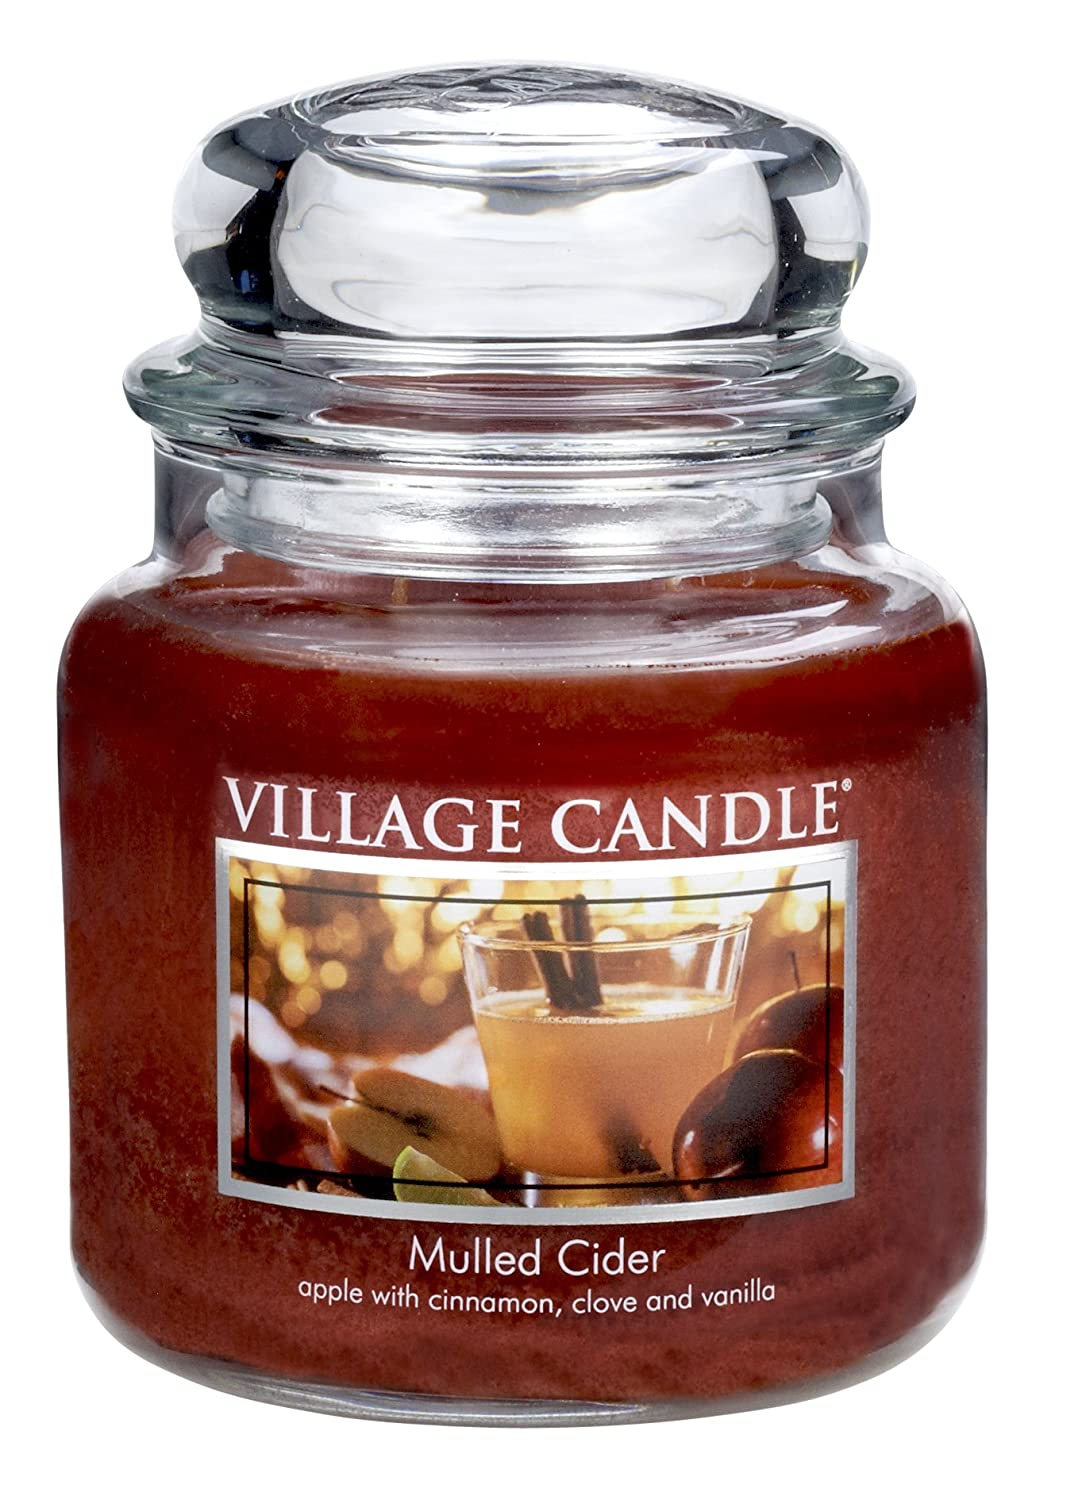 Village Candle Mulled Cider 11 oz Glass Jar Scented Candle, Small Inc. 106011318